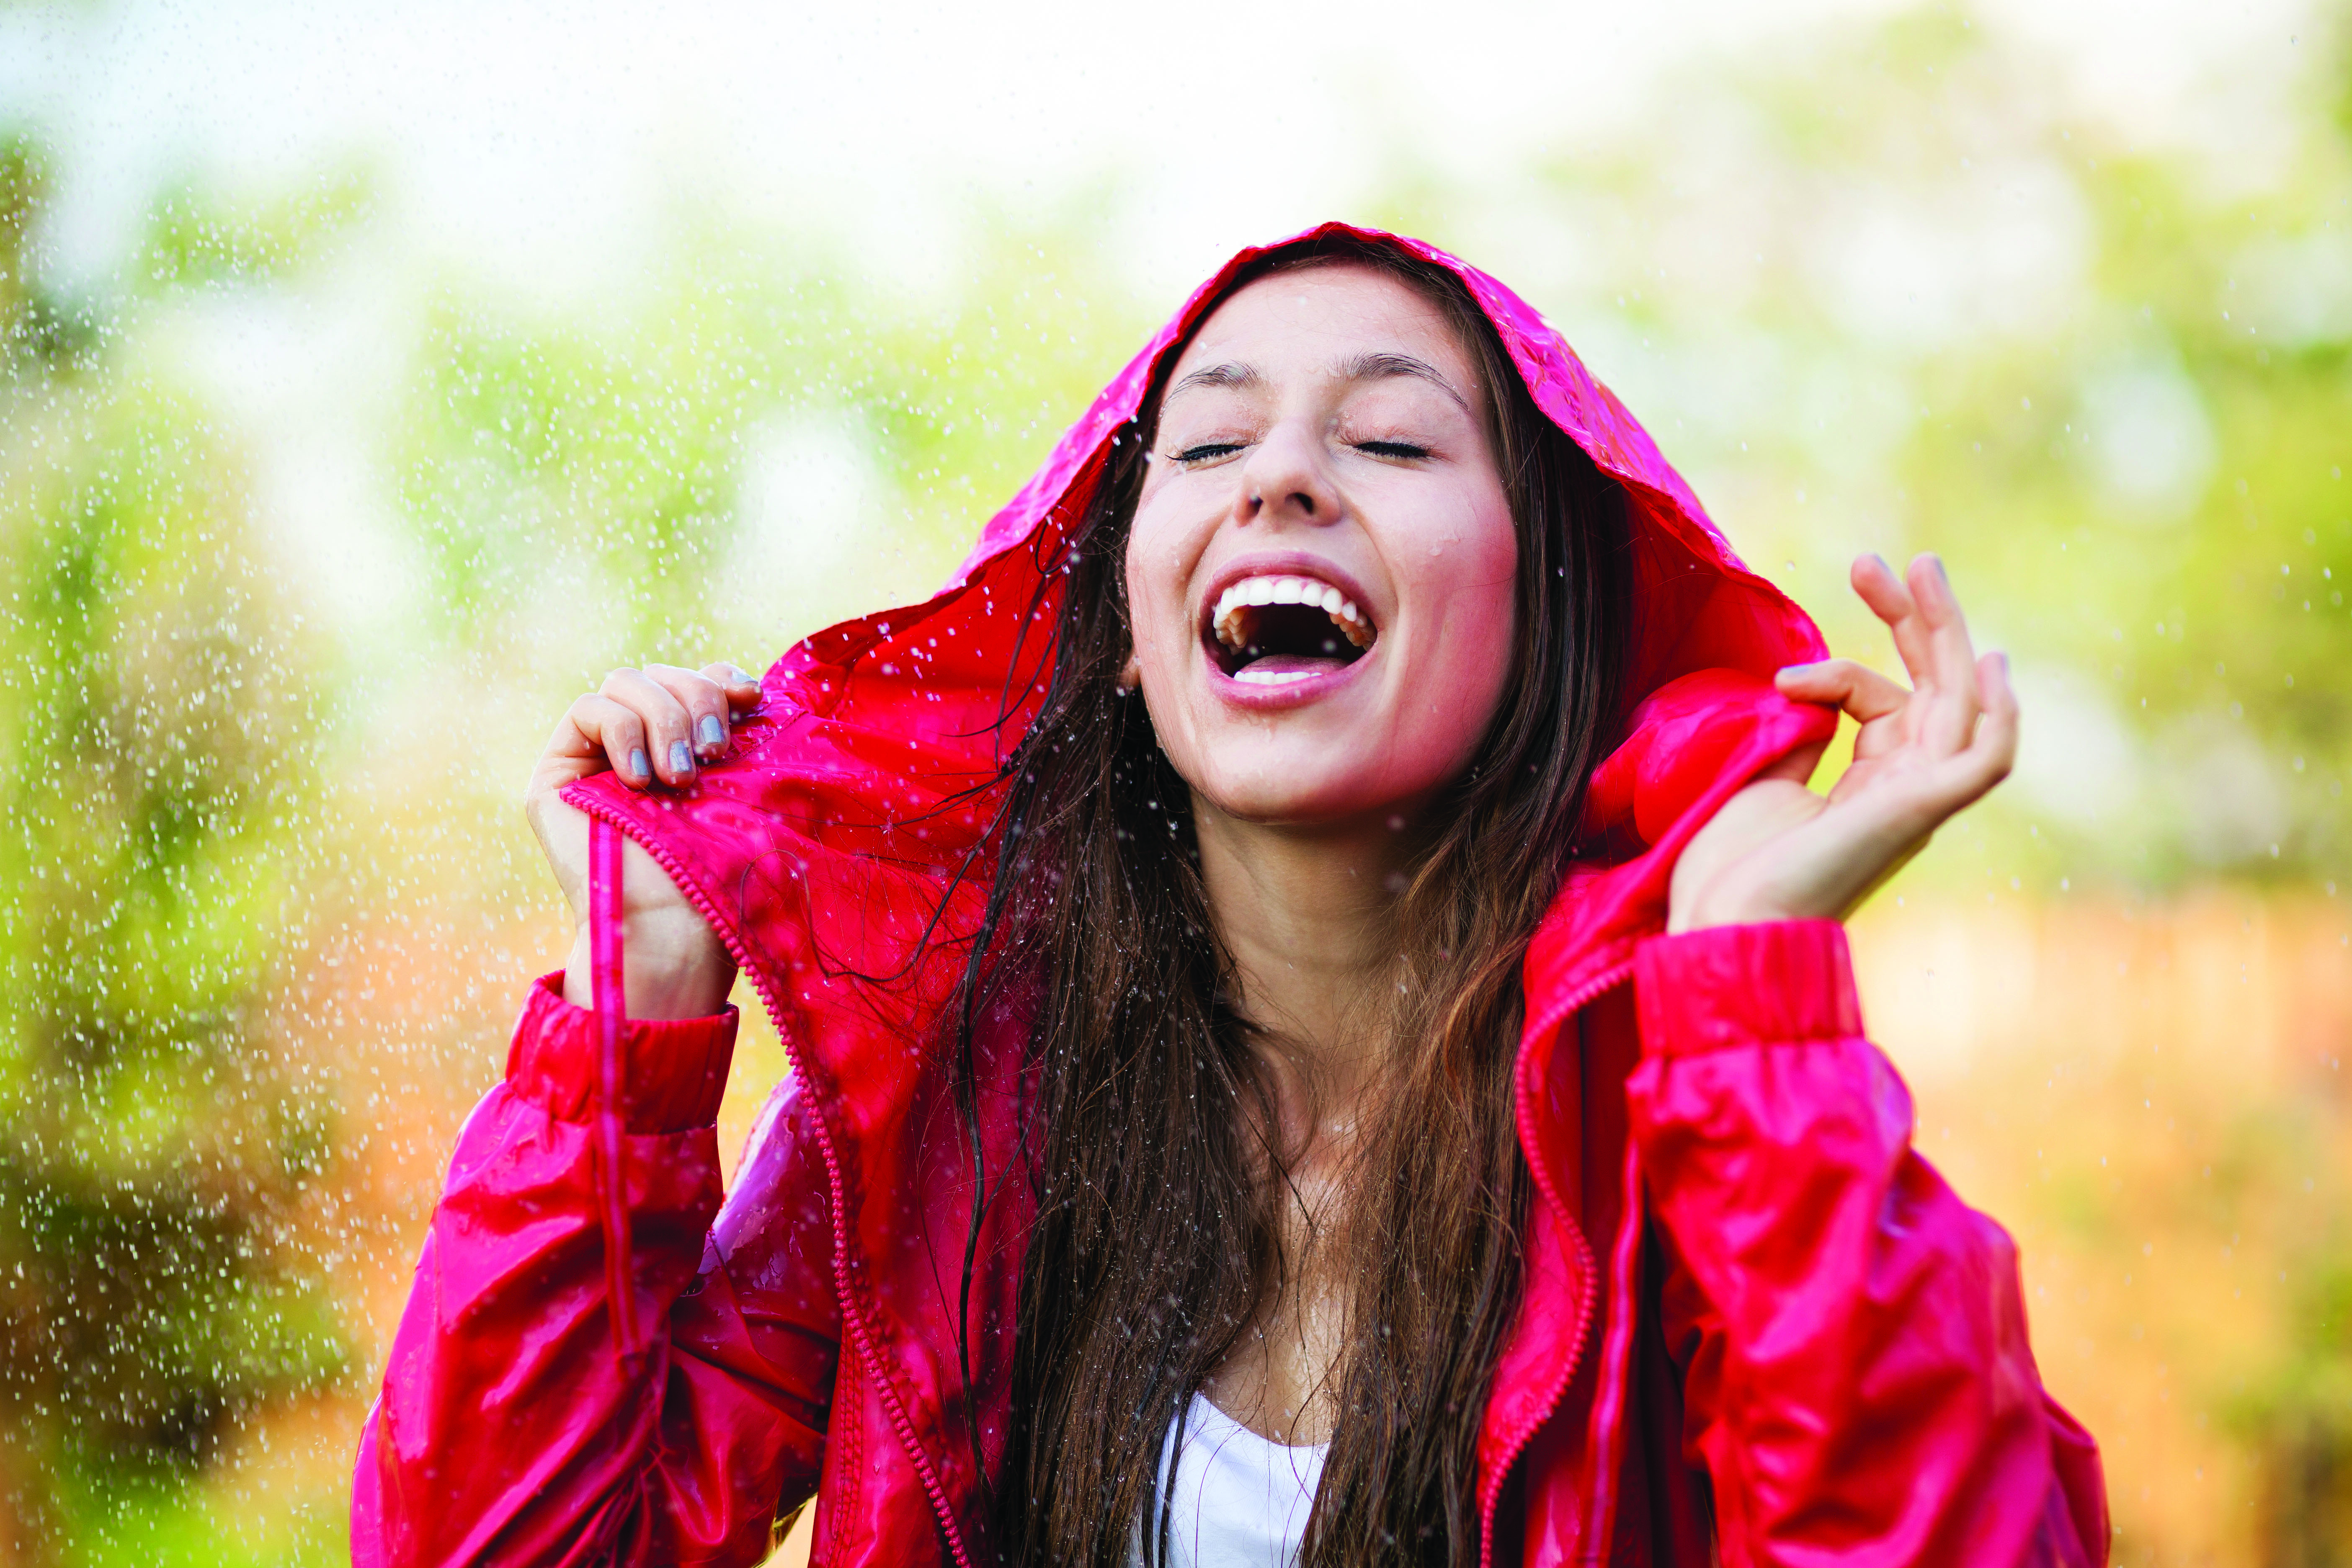 Woman enjoying rain